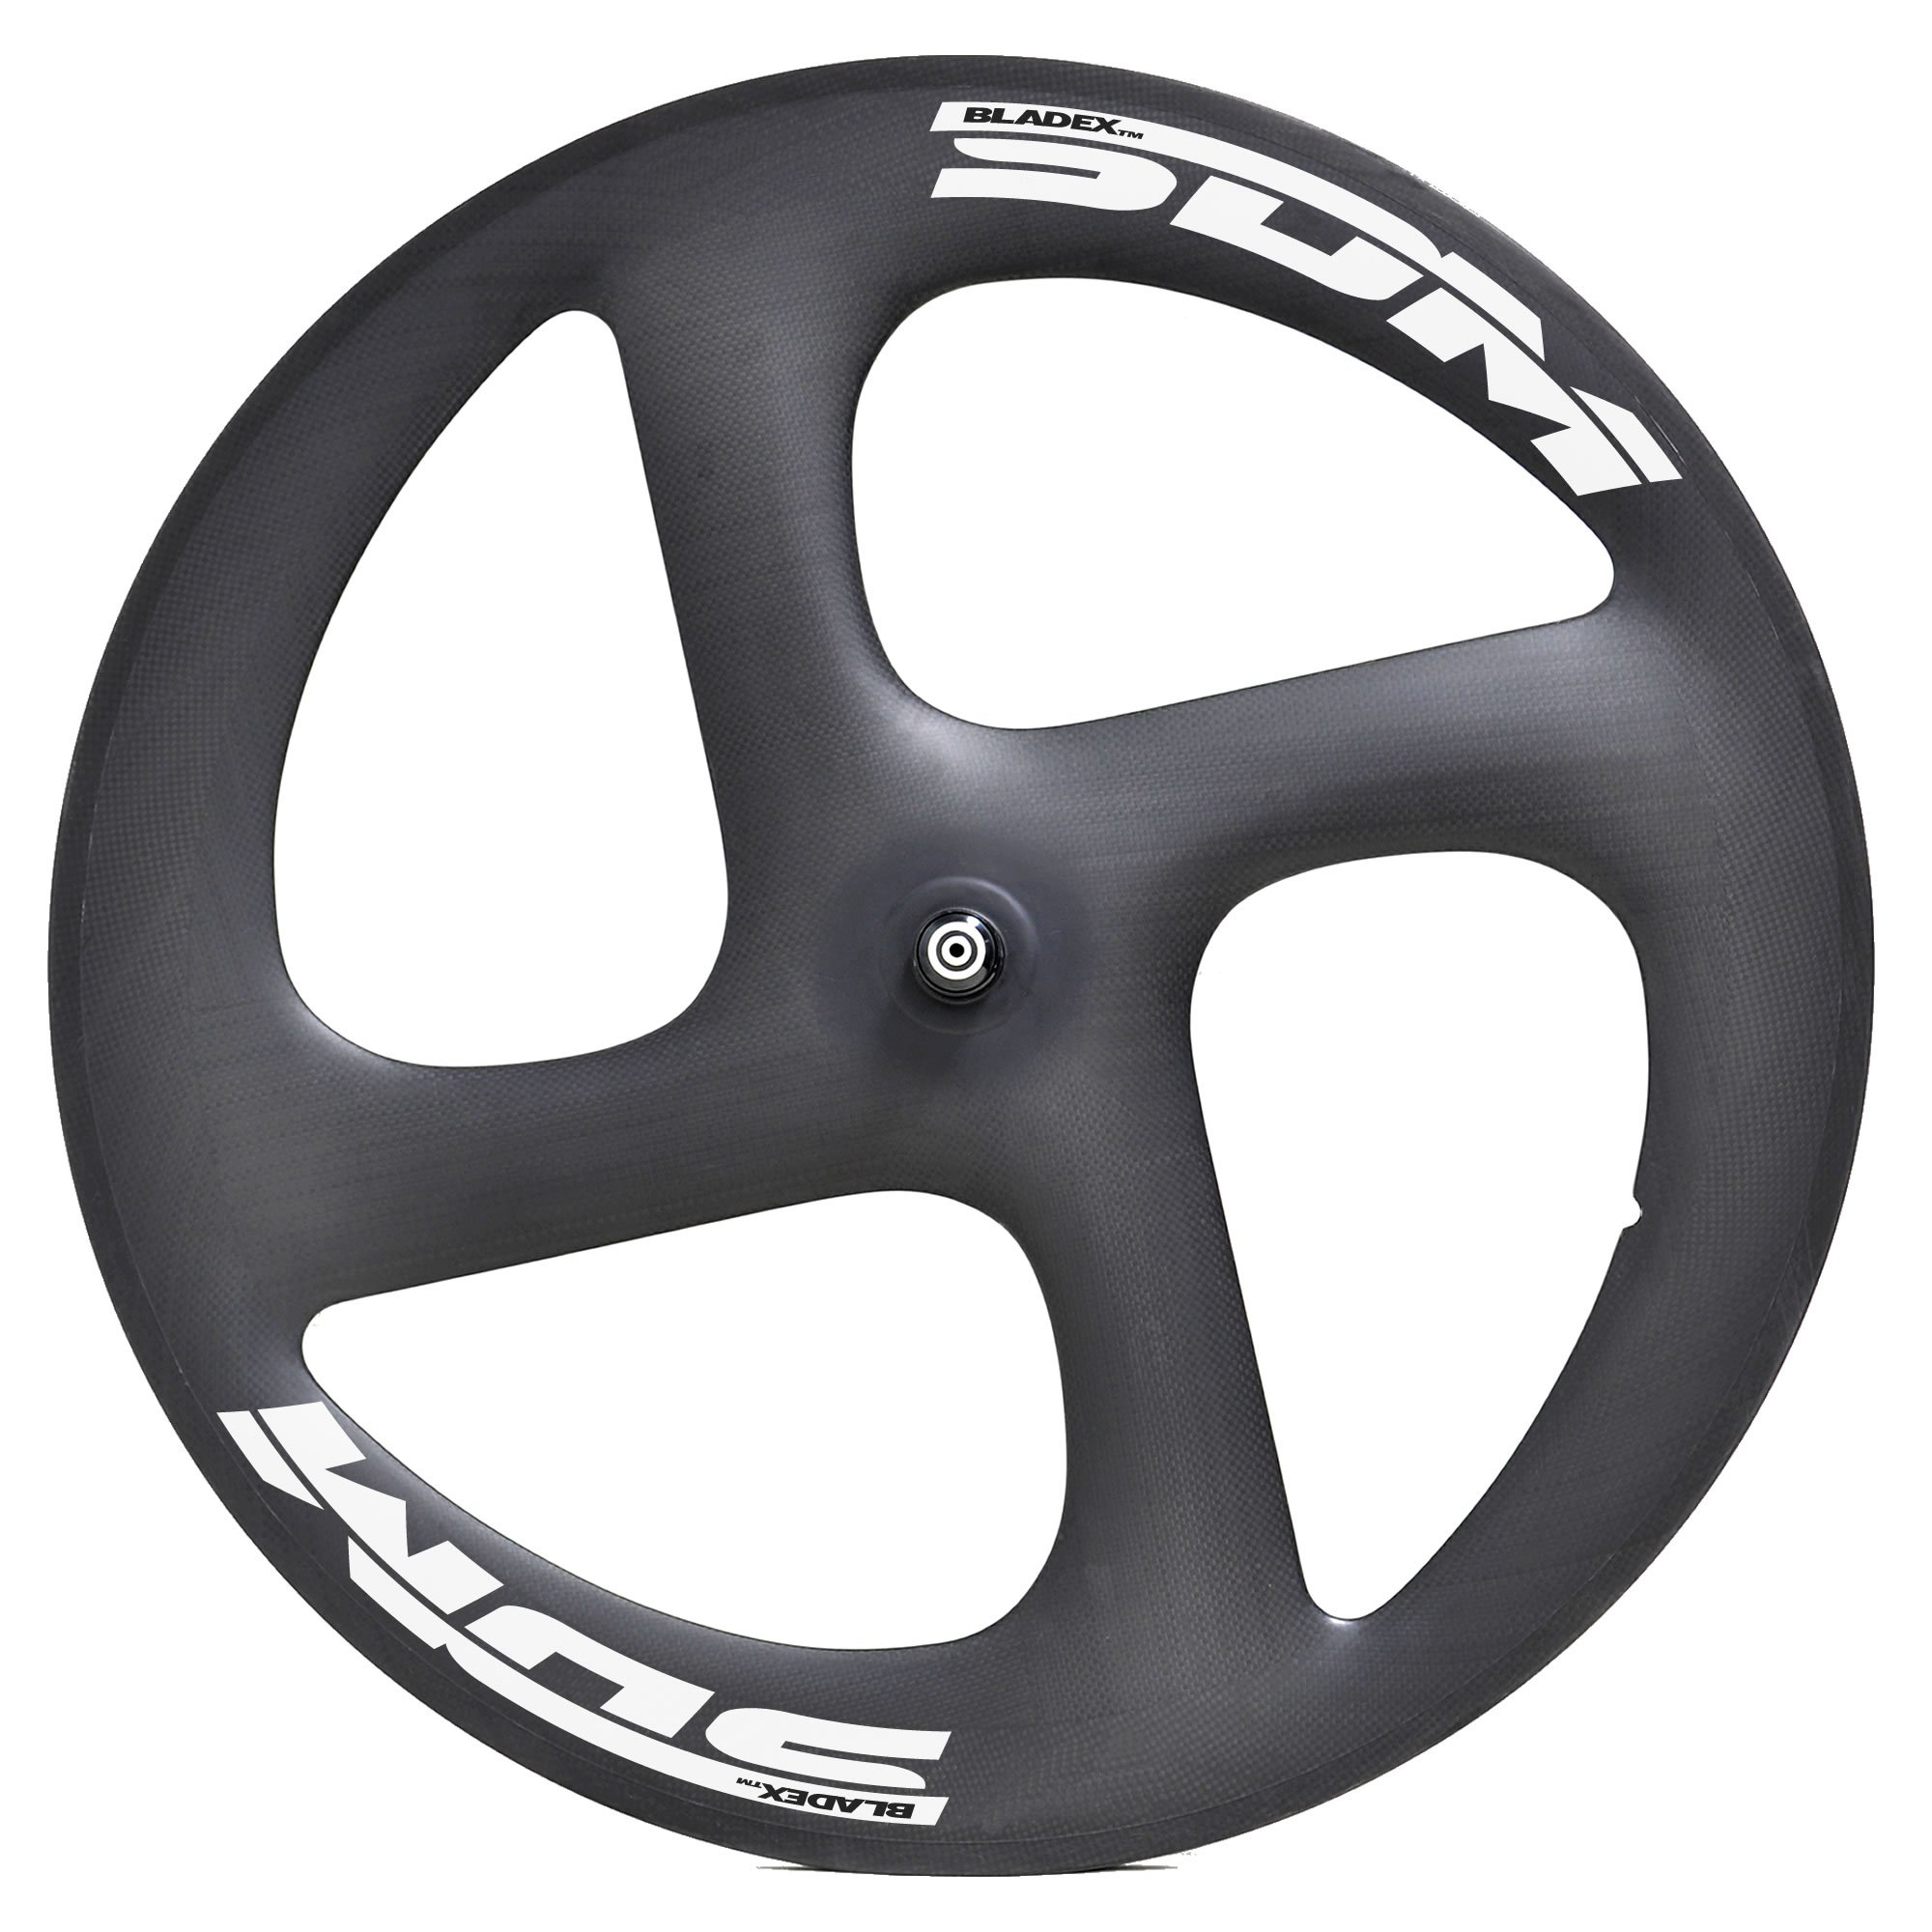 SDM 4S Carbon Wheel White Decals For Triathlon Time Trail Bike